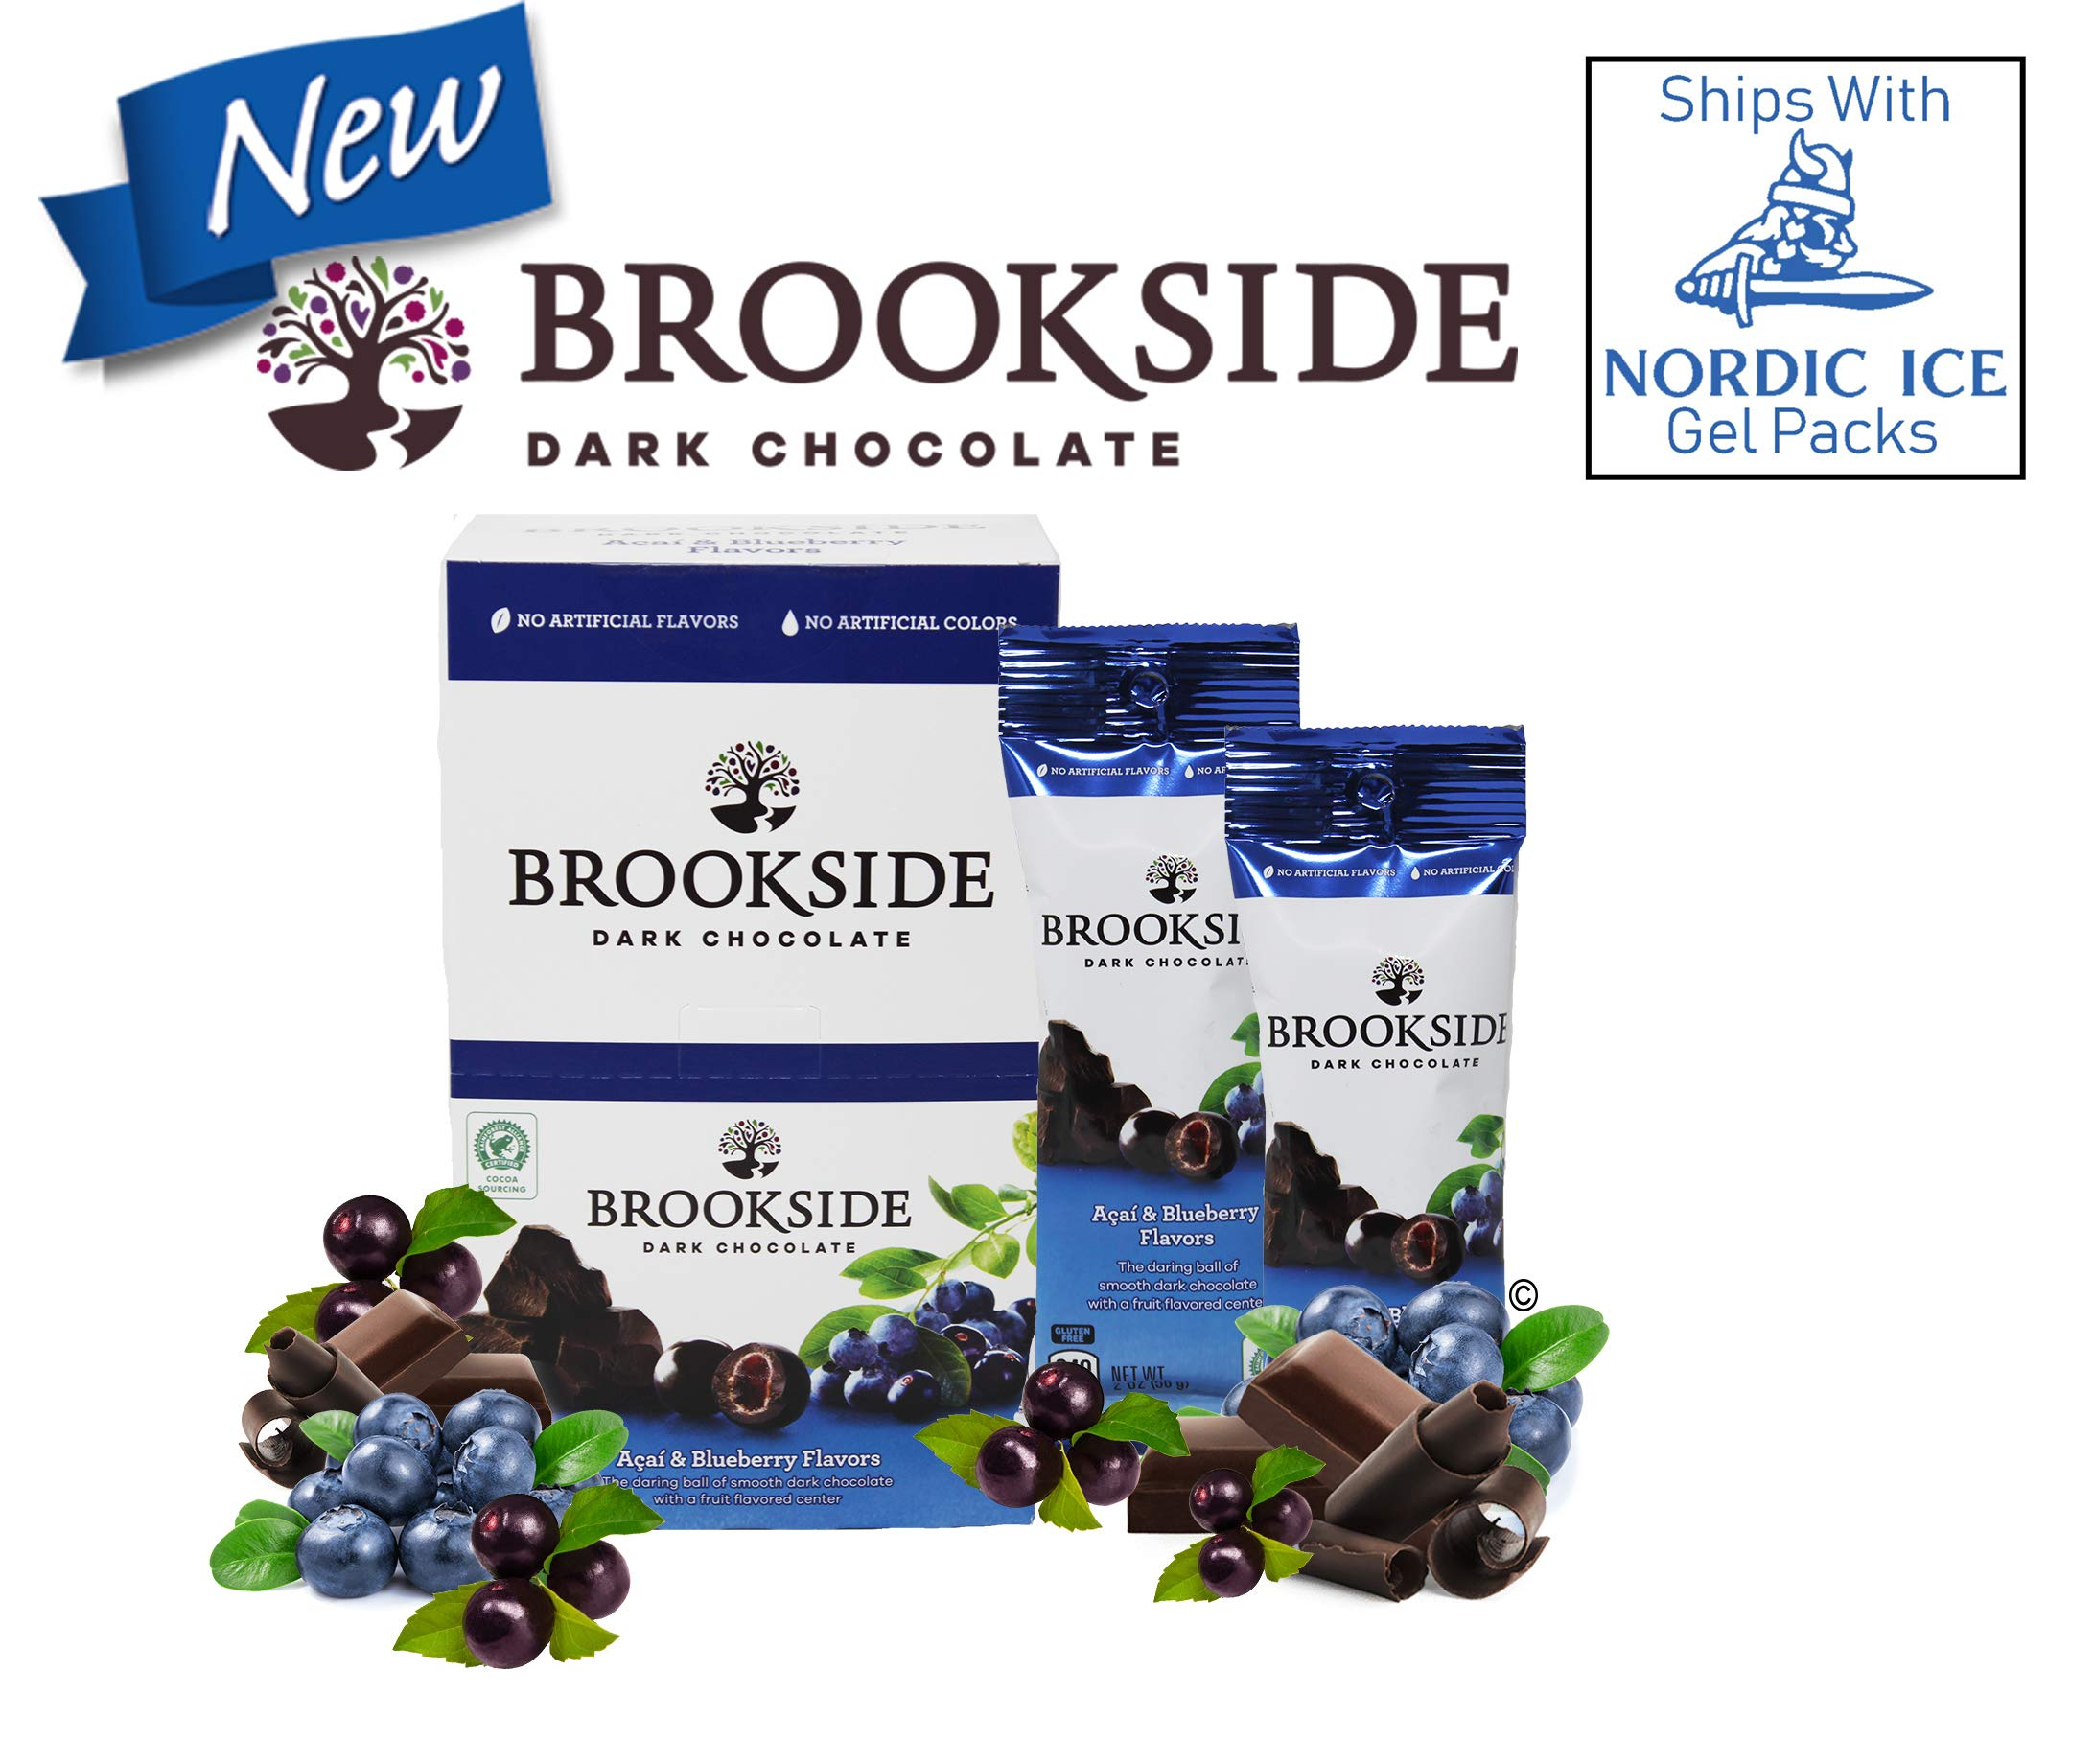 Gluten Free New from Hershey's, Brookside Acai & Blueberry Dark Chocolate On-The-Go Snack Packs 10 Count Box by Online 24/7 LLC